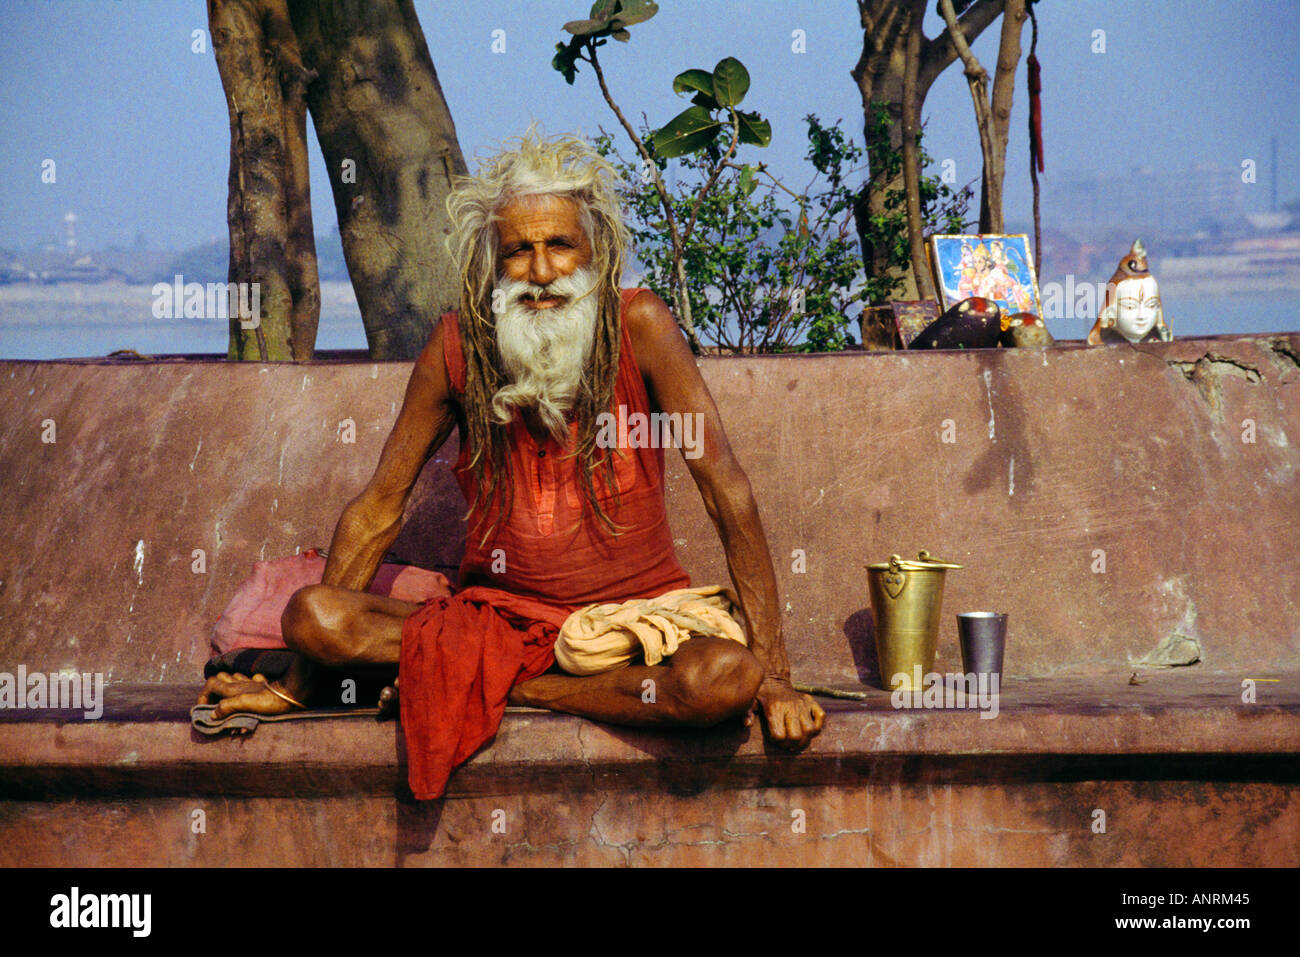 Calcutta India Sadhu And Shrine By Hoogly River - Stock Image